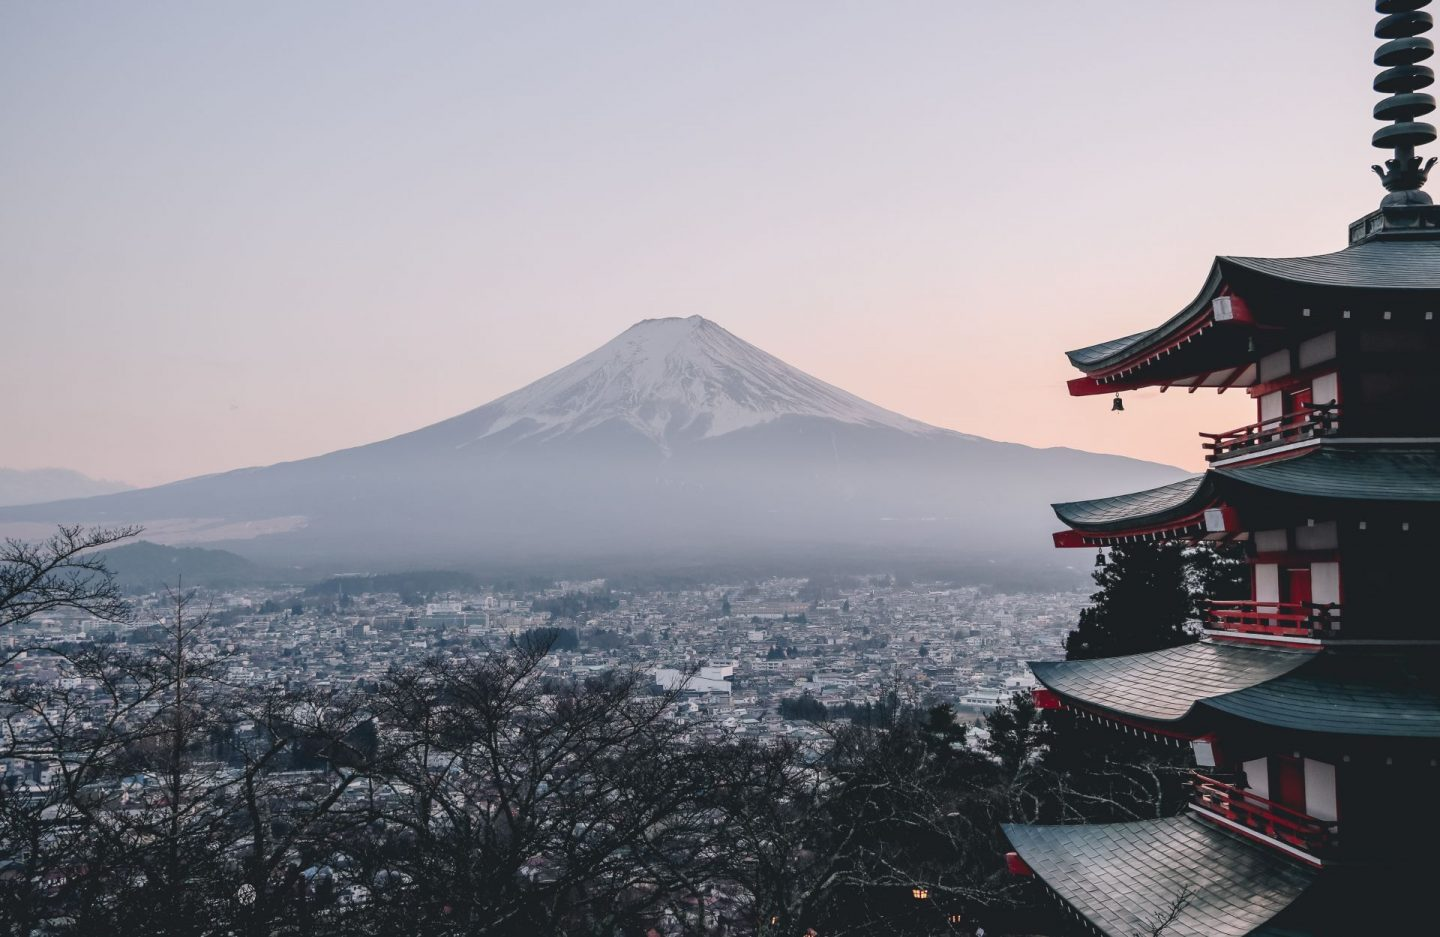 japan, temple, mount fuji, travel, destinations to visit in 2020, view, sunset, country in asia